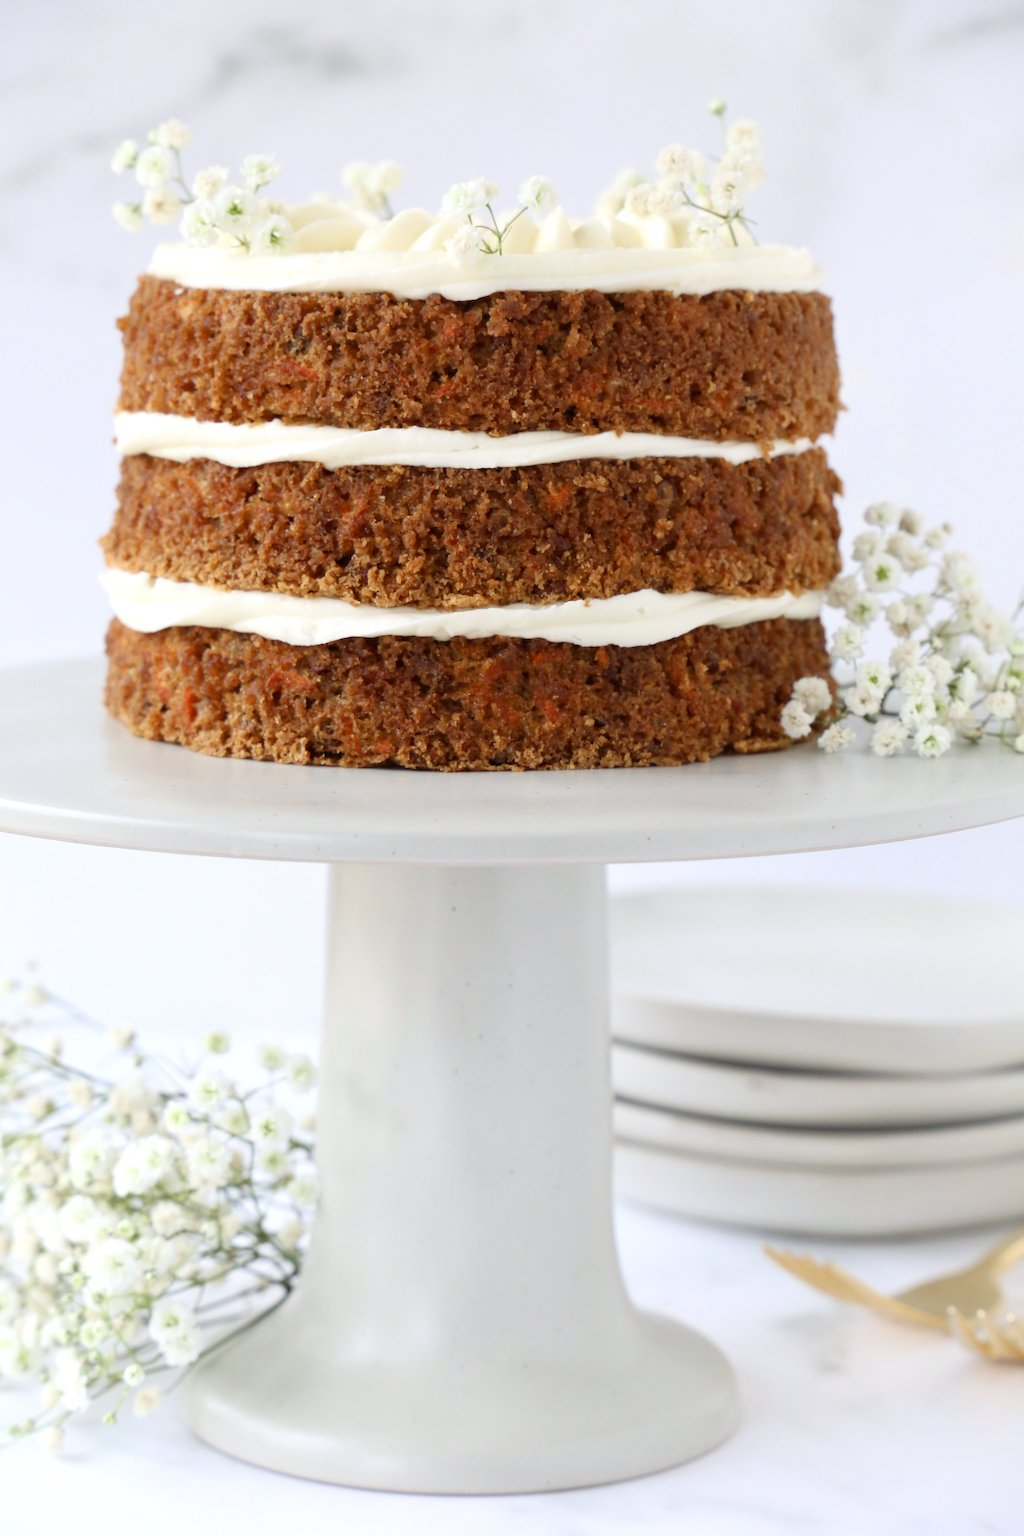 three layers of carrot cake on a gray cake stand with babies breath garnishing the cake